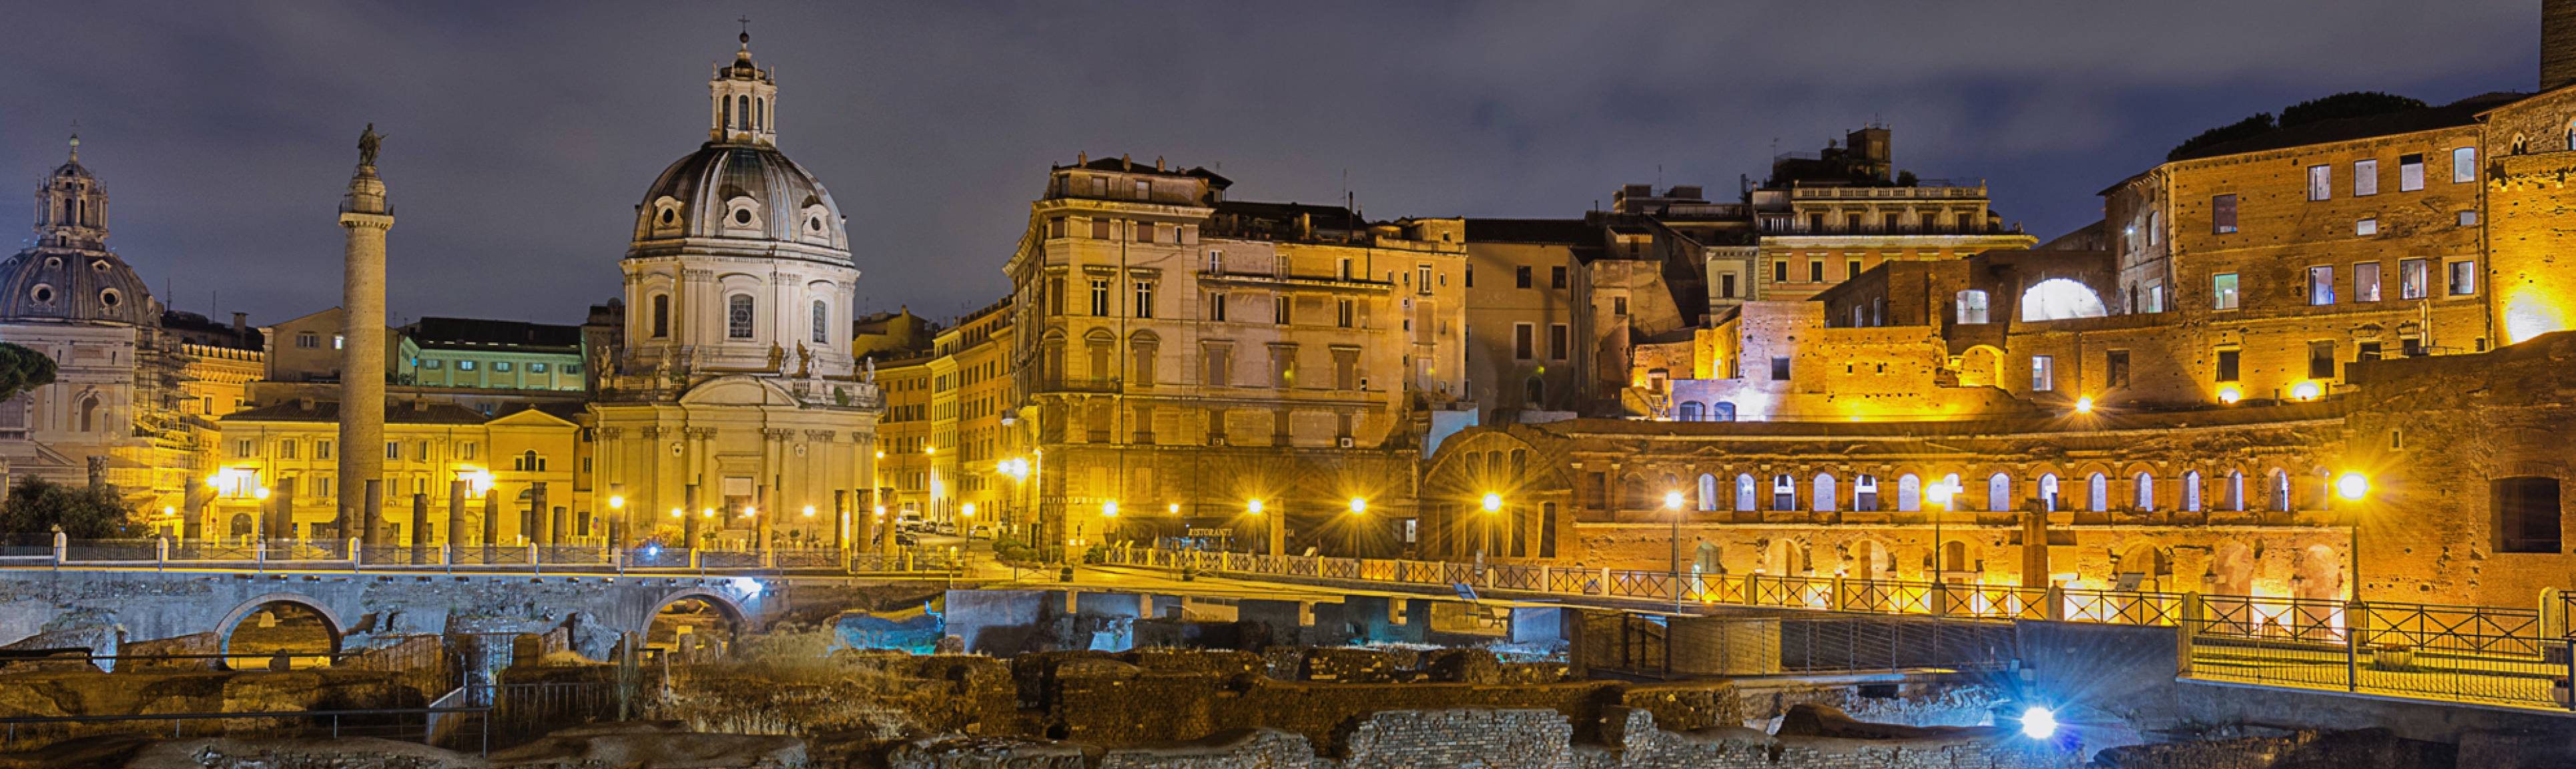 Illuminated night view of the ancient Roman Forum